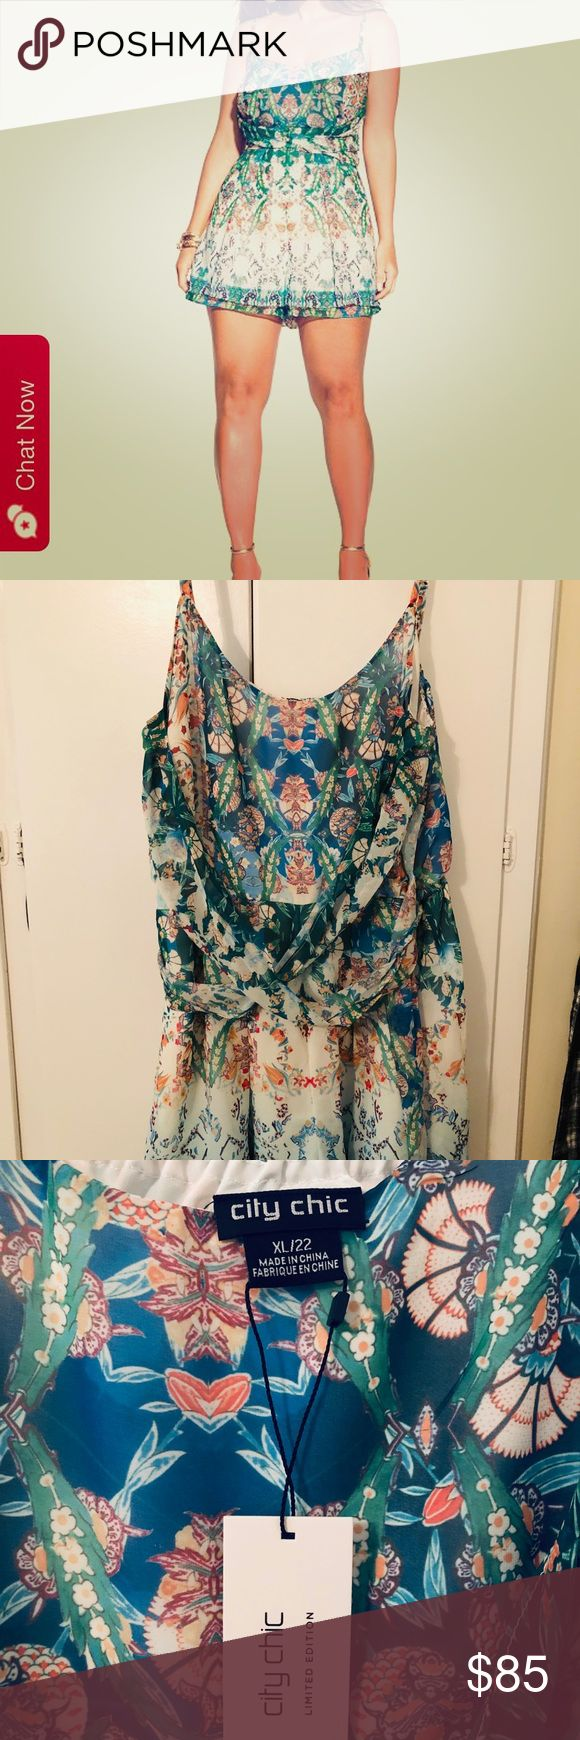 🔥PRICE LOWERED🔥😻 NWT City Chic Istanbul R…